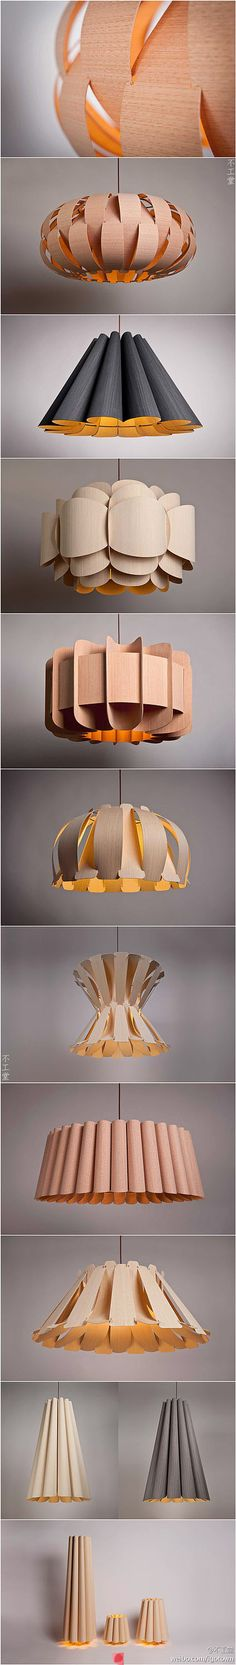 Lamp Forms